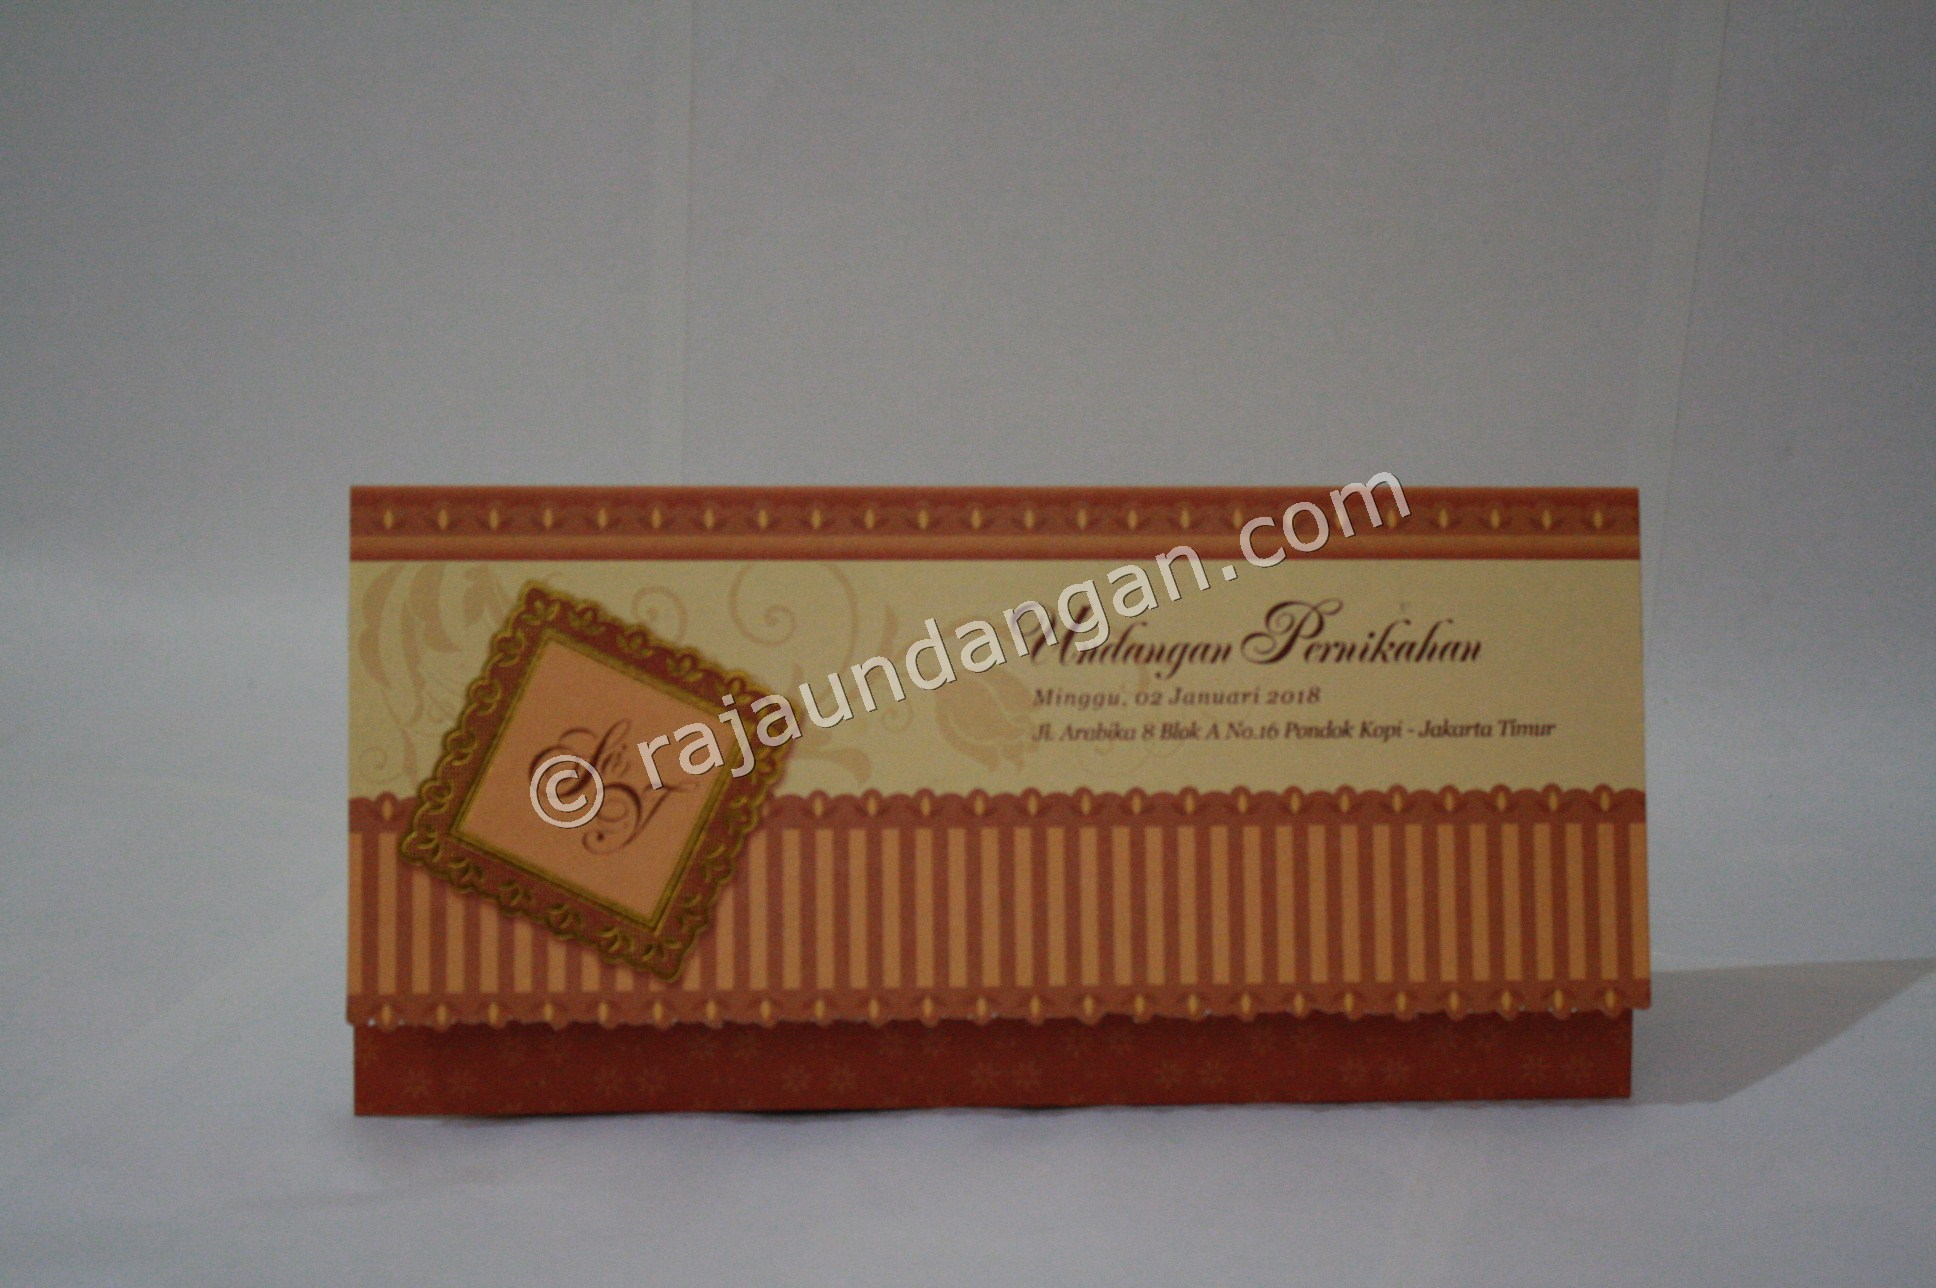 Undangan Pernikahan Softcover Shanti dan Haryanto - Membuat Wedding Invitations Simple di Dr. Sutomo